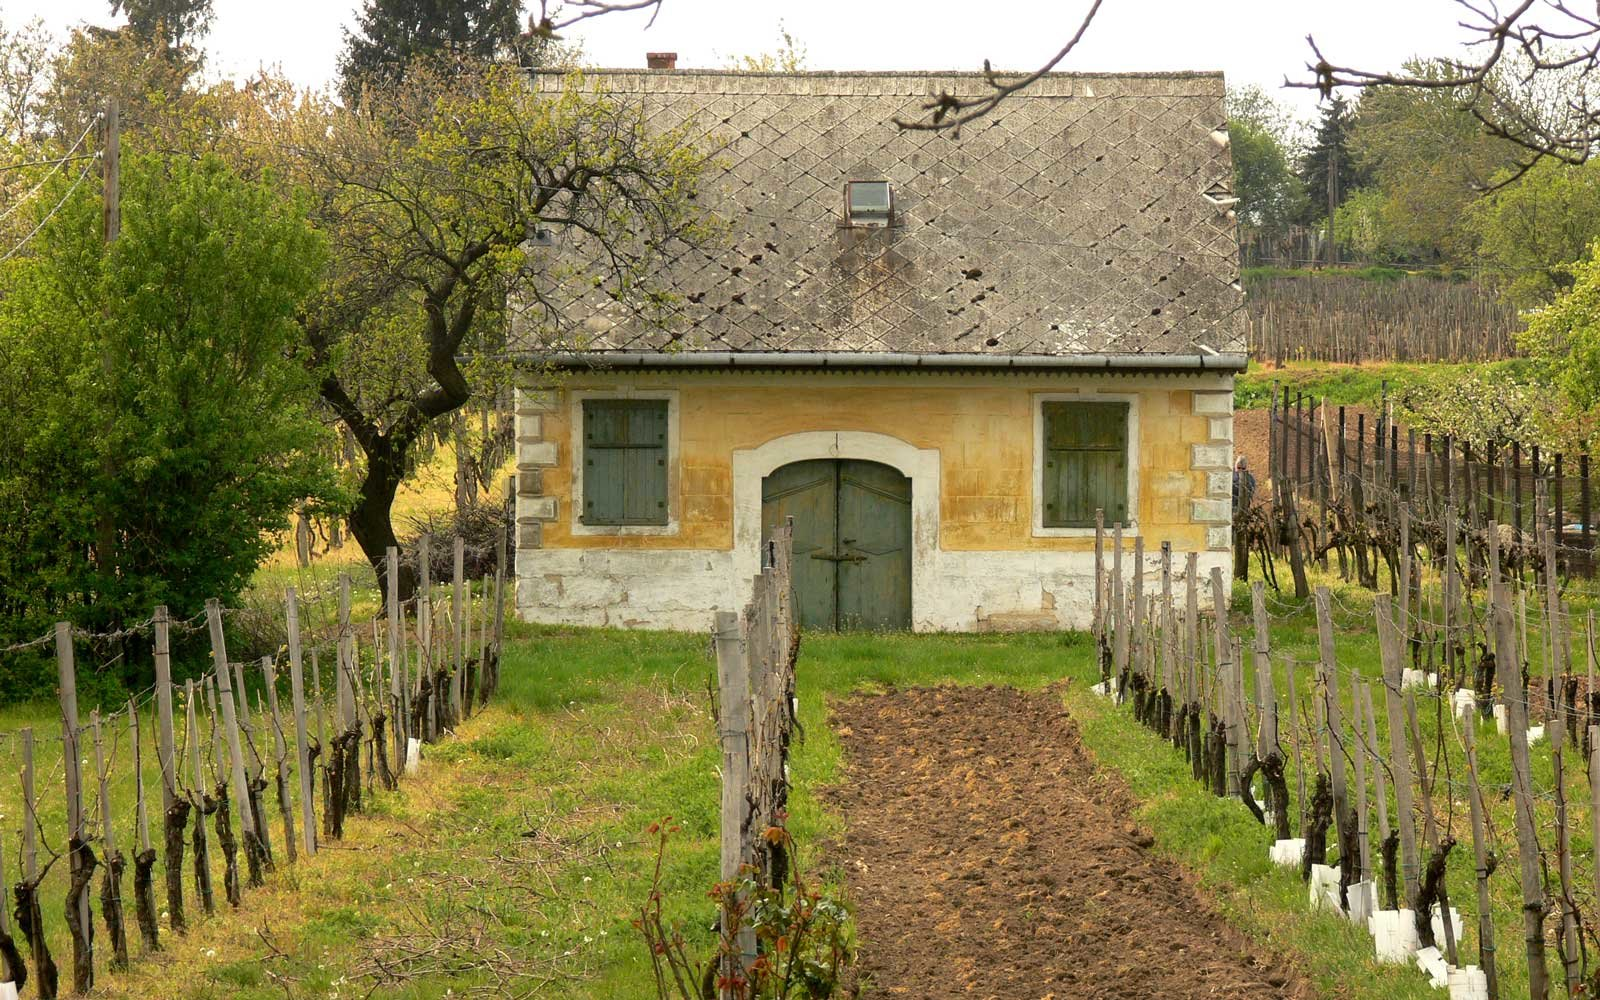 House at a vineyard in Etyek, Hungary